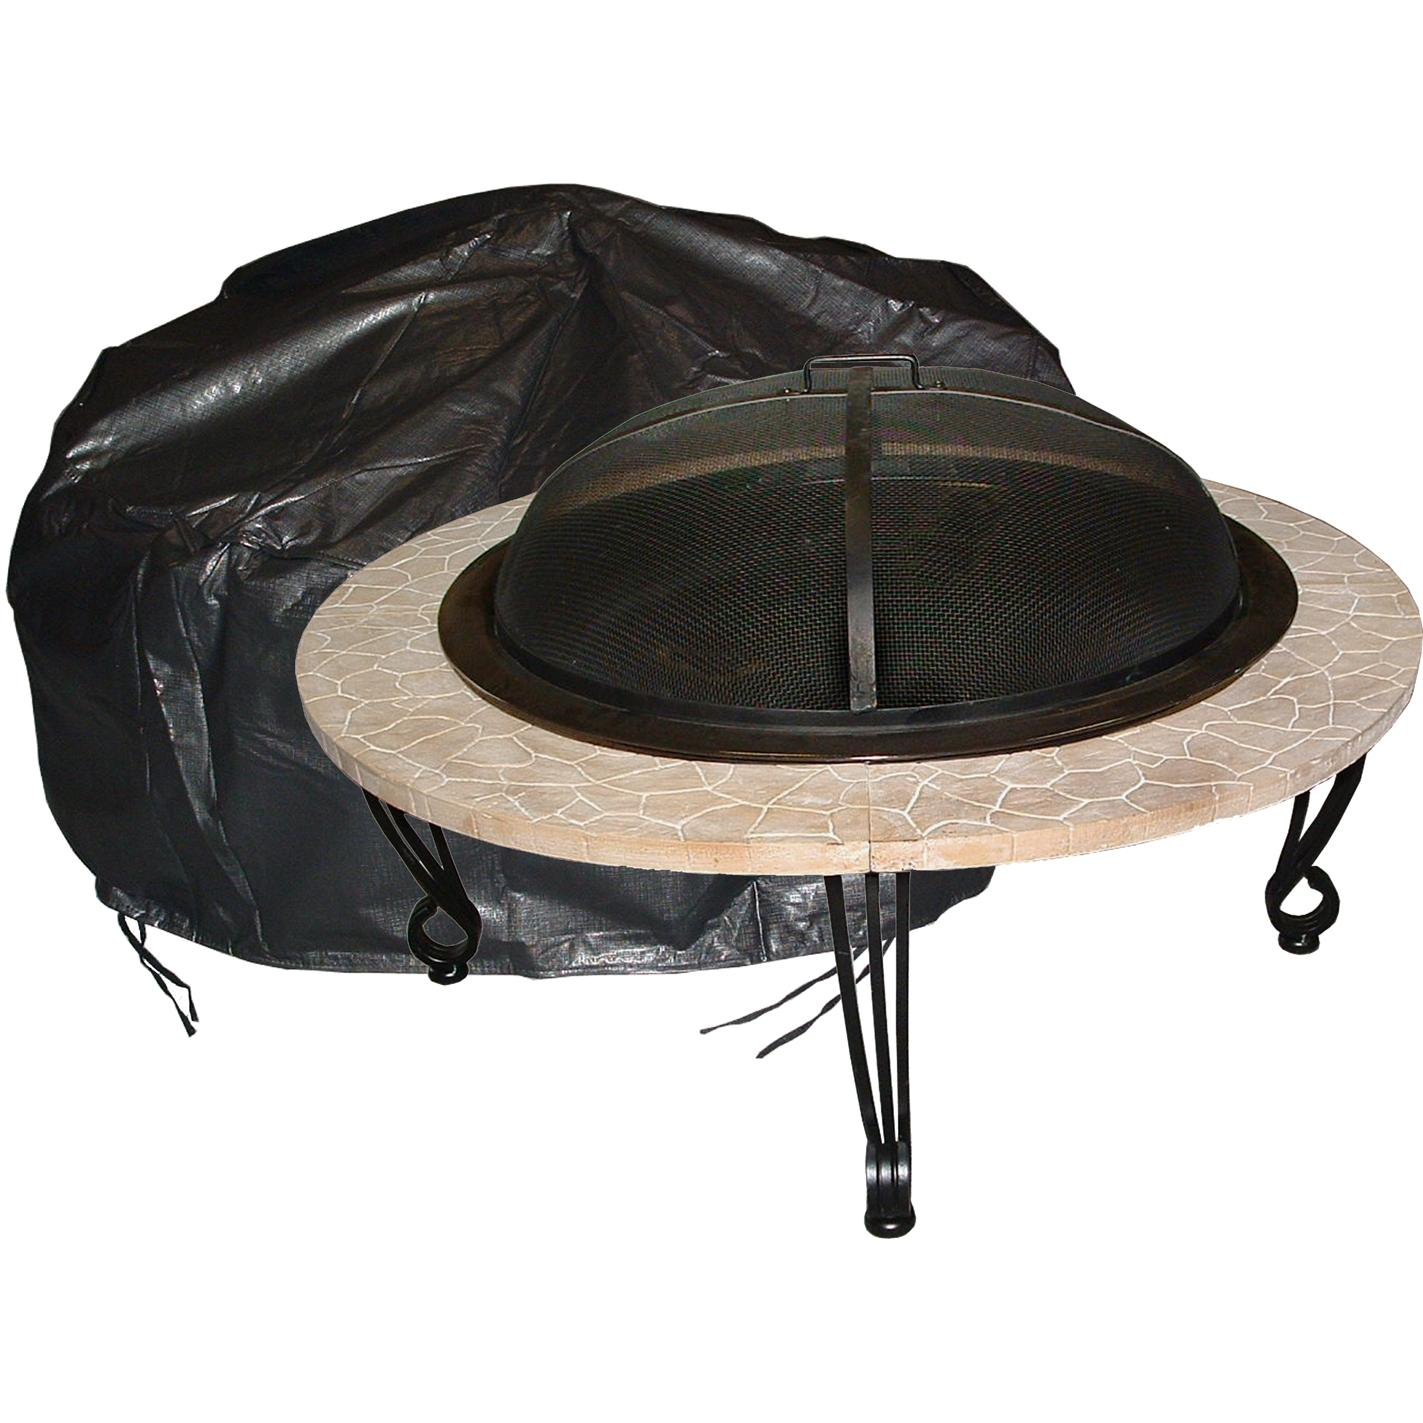 Fire Sense Large Outdoor Round Fire Pit Felt-Lined Vinyl Cover